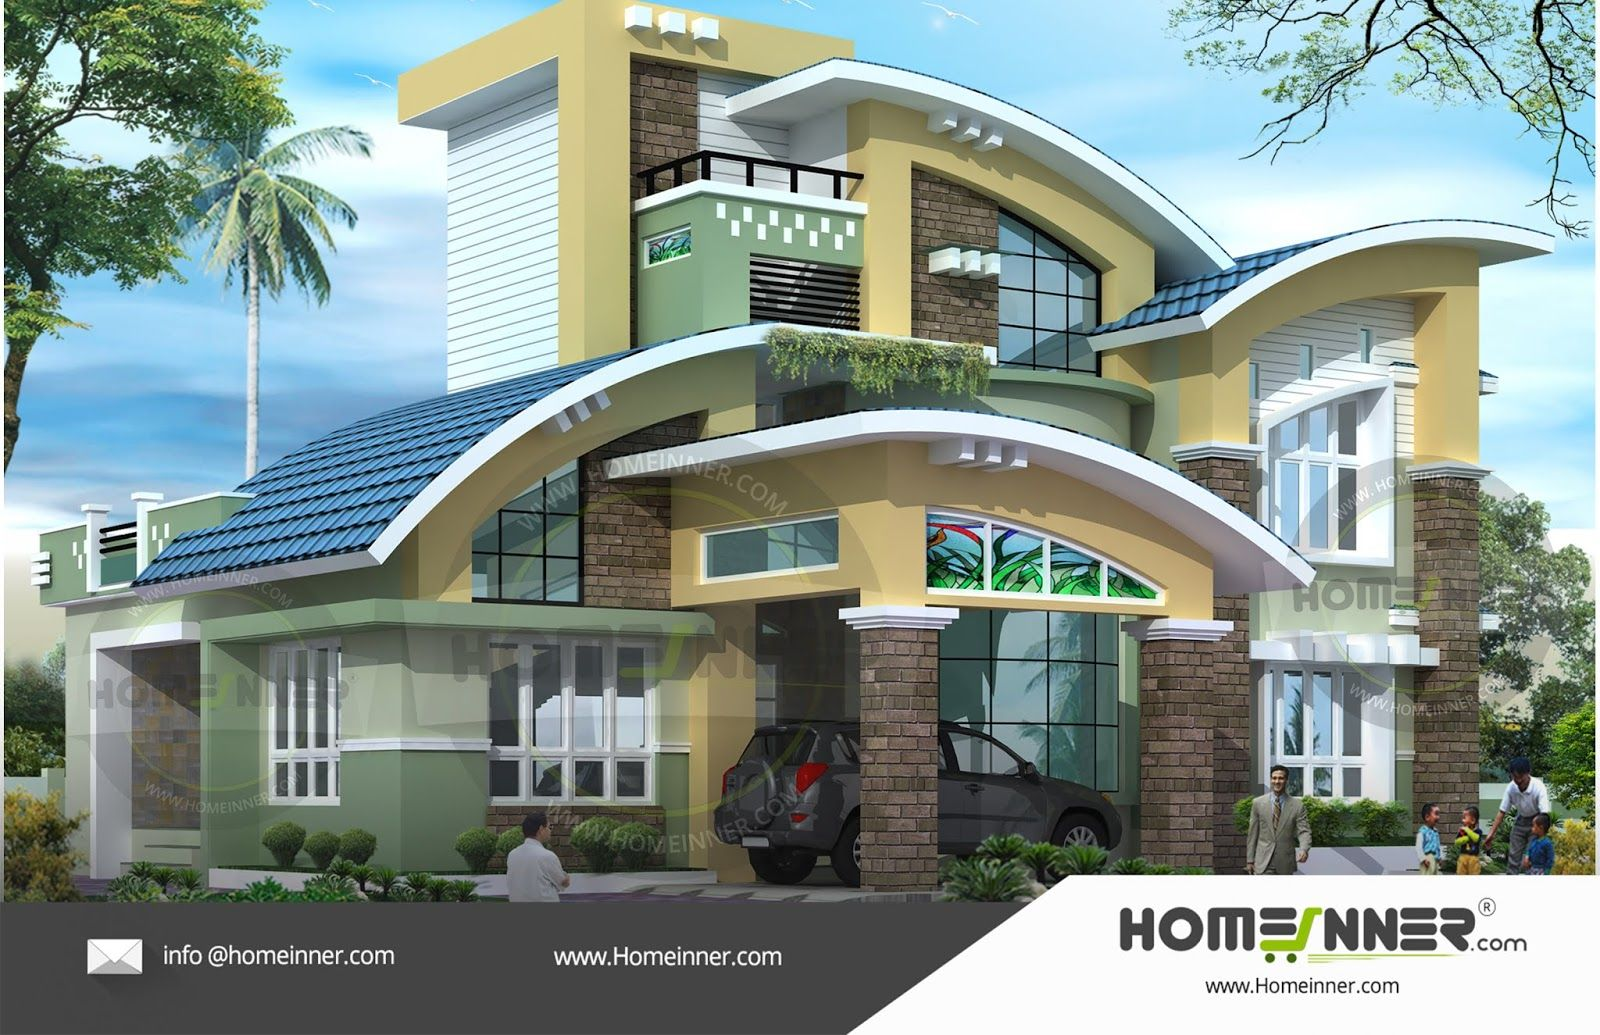 4bhk Readymade House Plan 2830 Sq Ft 4 Bedroom 4 Bath Free House Plans Architectural House Plans Contemporary House Design